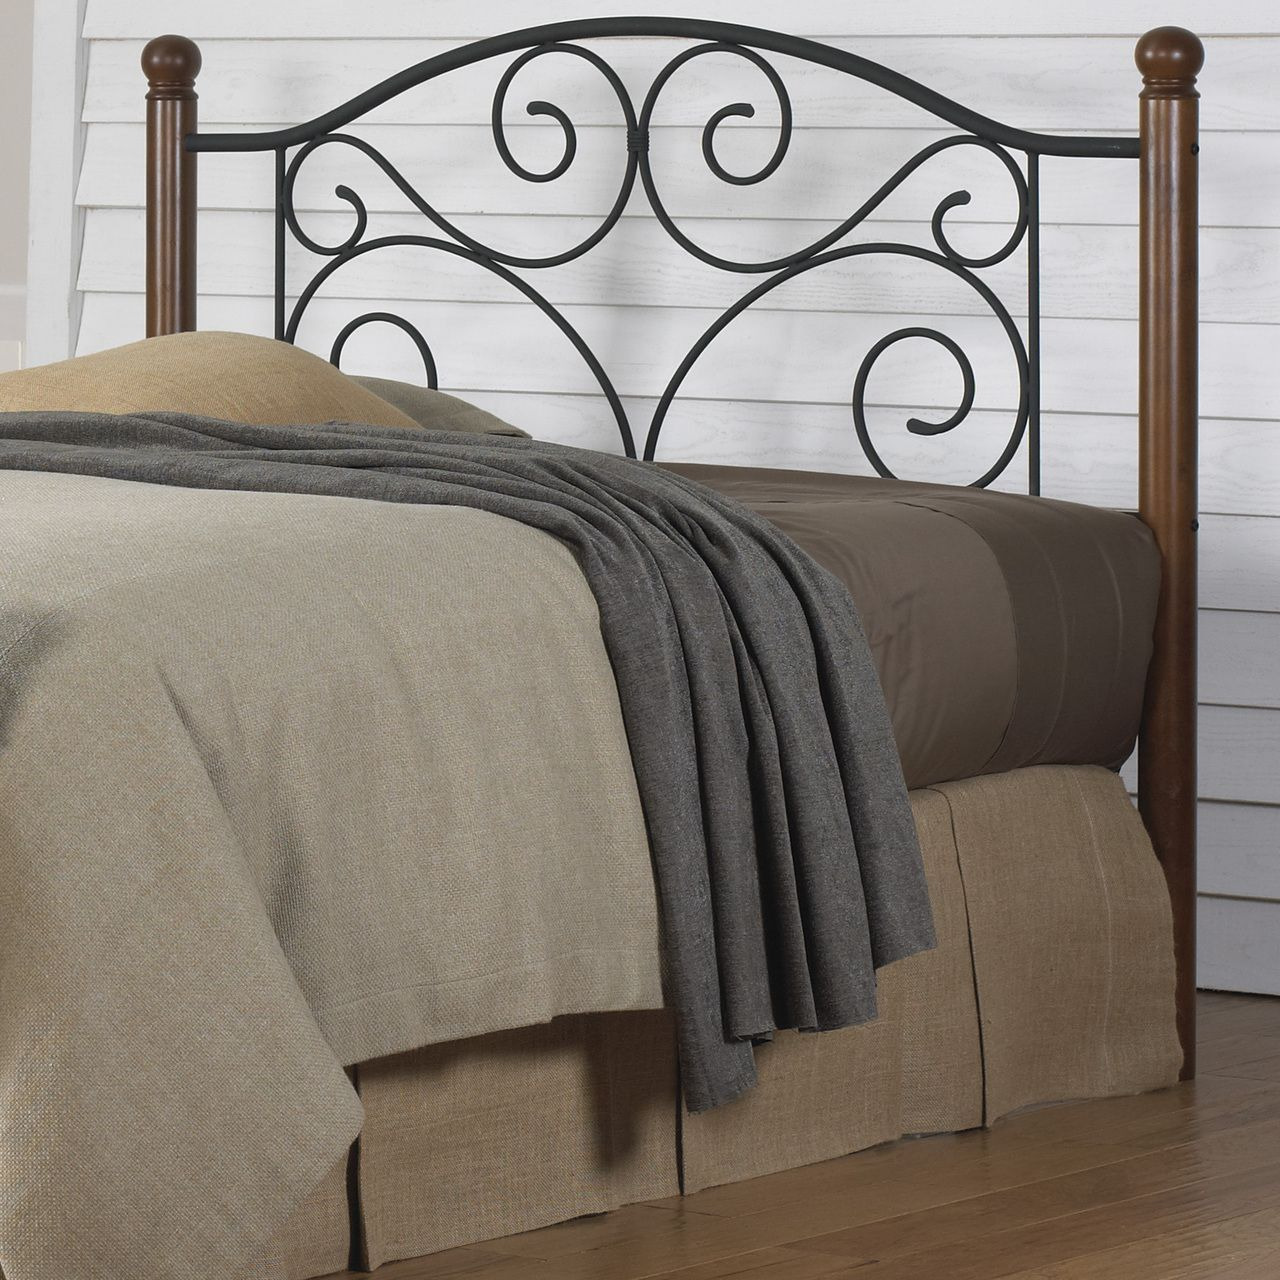 Fashion Bed Group Doral Iron Headboard In Matte Black And Walnut